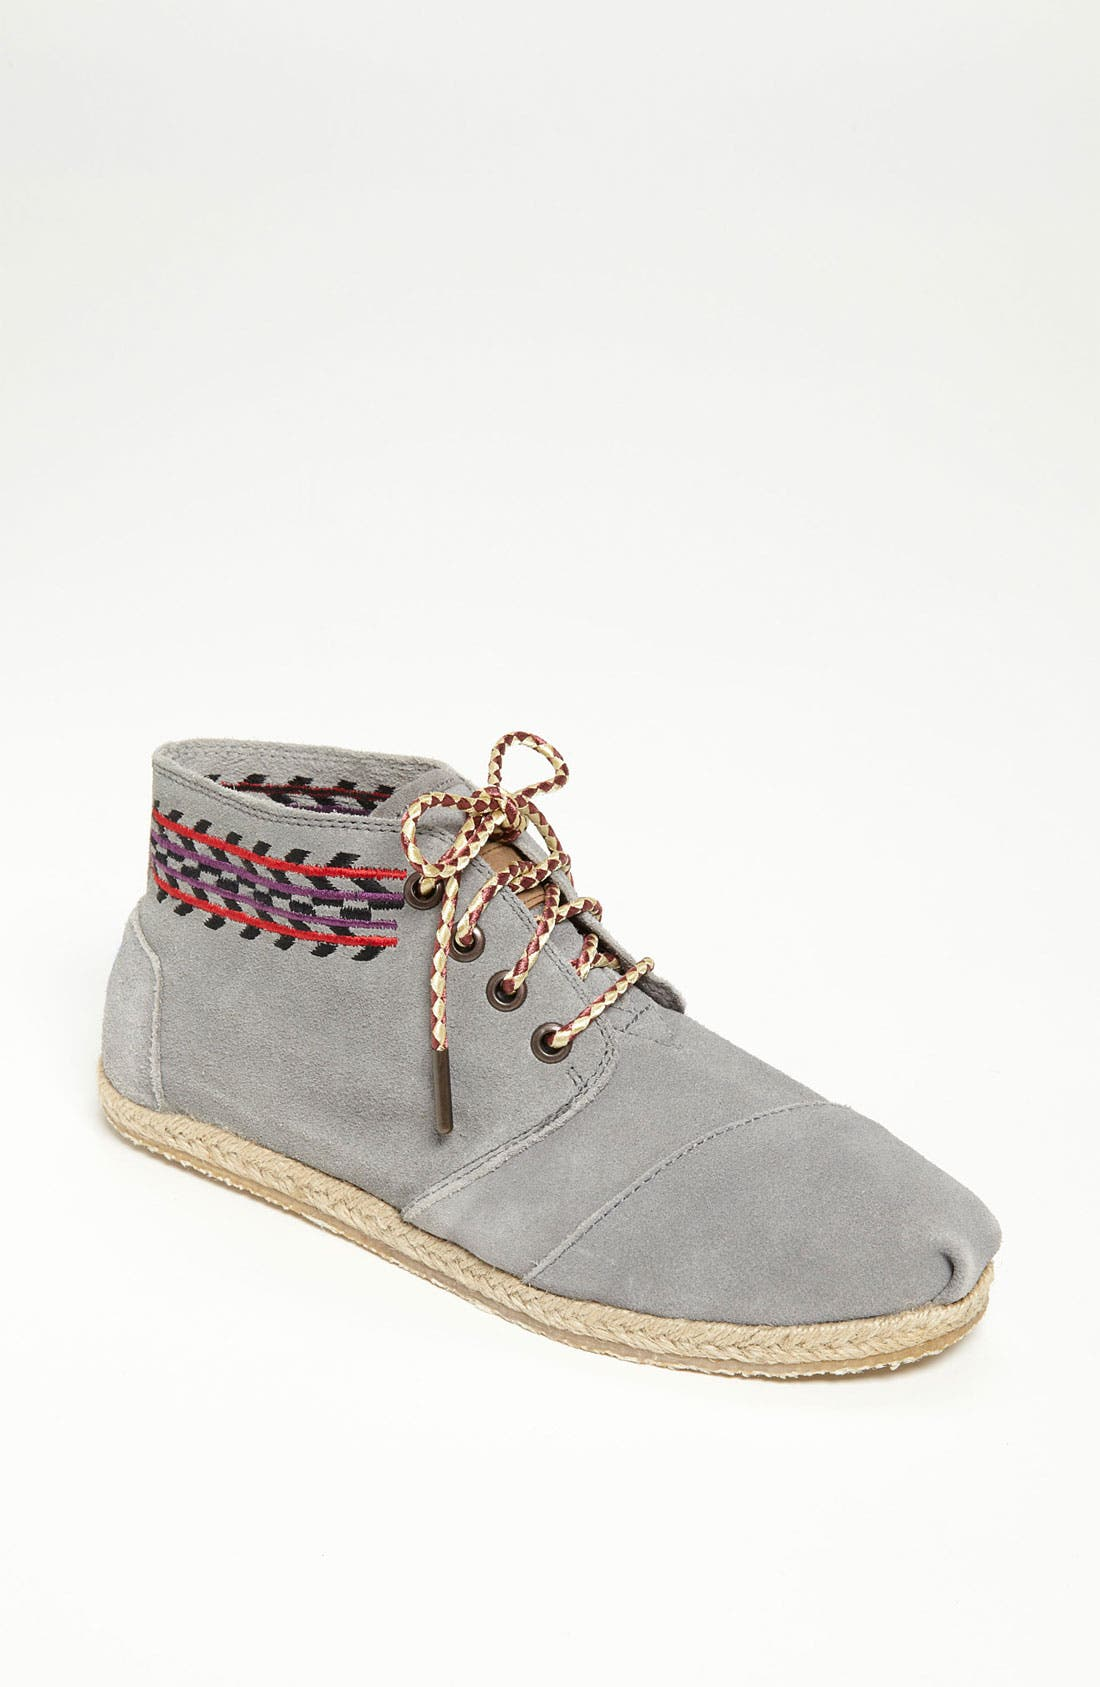 Alternate Image 1 Selected - TOMS 'Botas Desert - Alarco' Chukka Boot (Women)